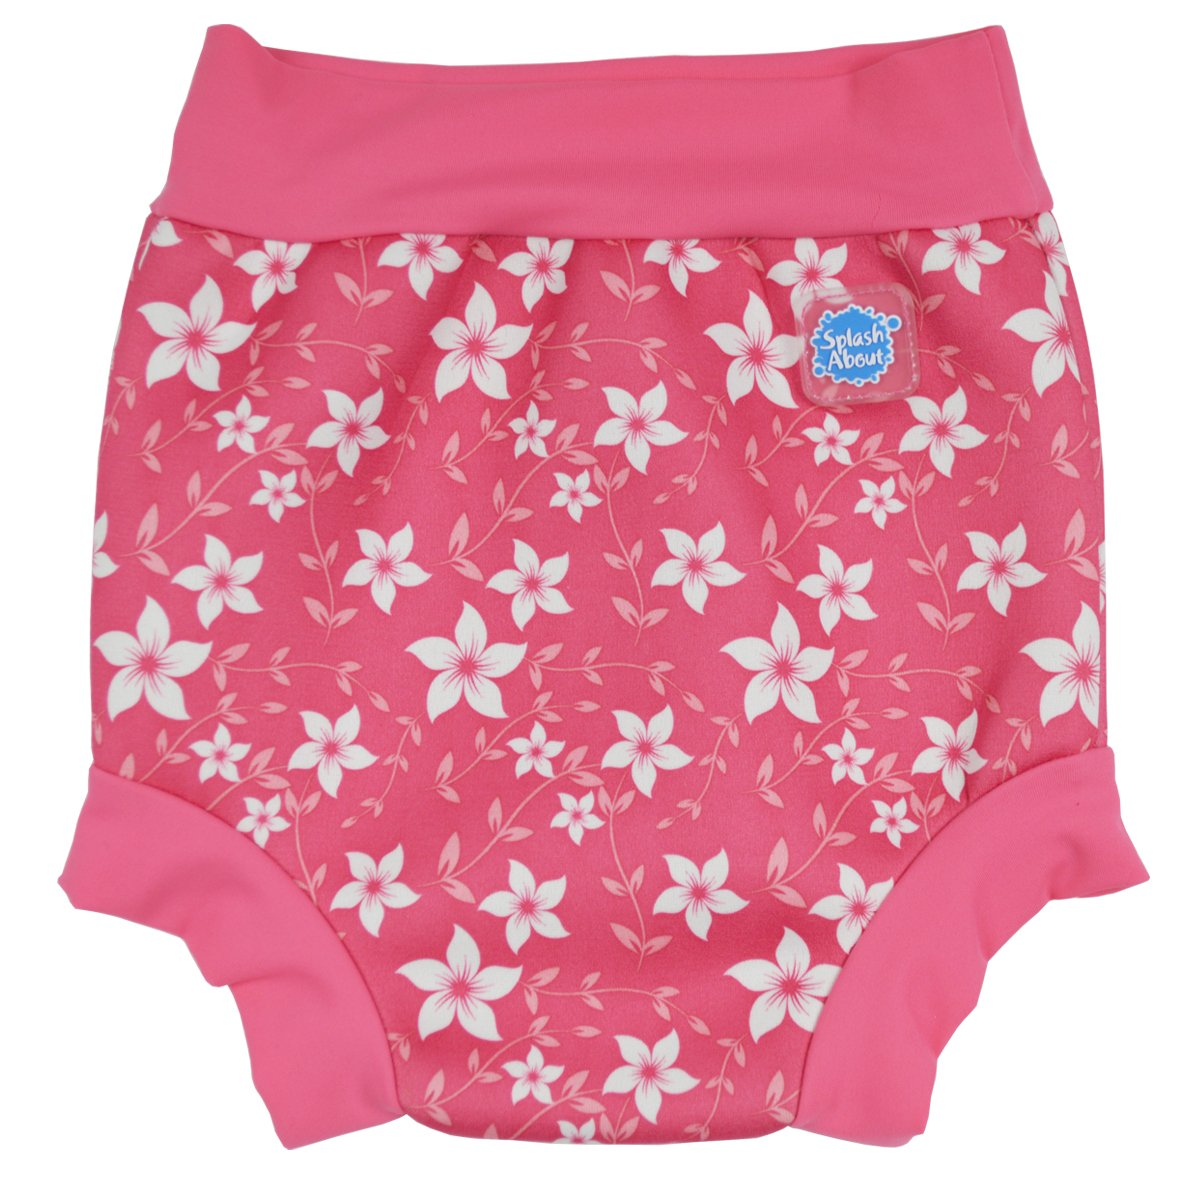 Splash About Baby Neoprene Swim Diaper - Reusable Swim (Medium 3-8 Months, Apple Daisy) HNADM